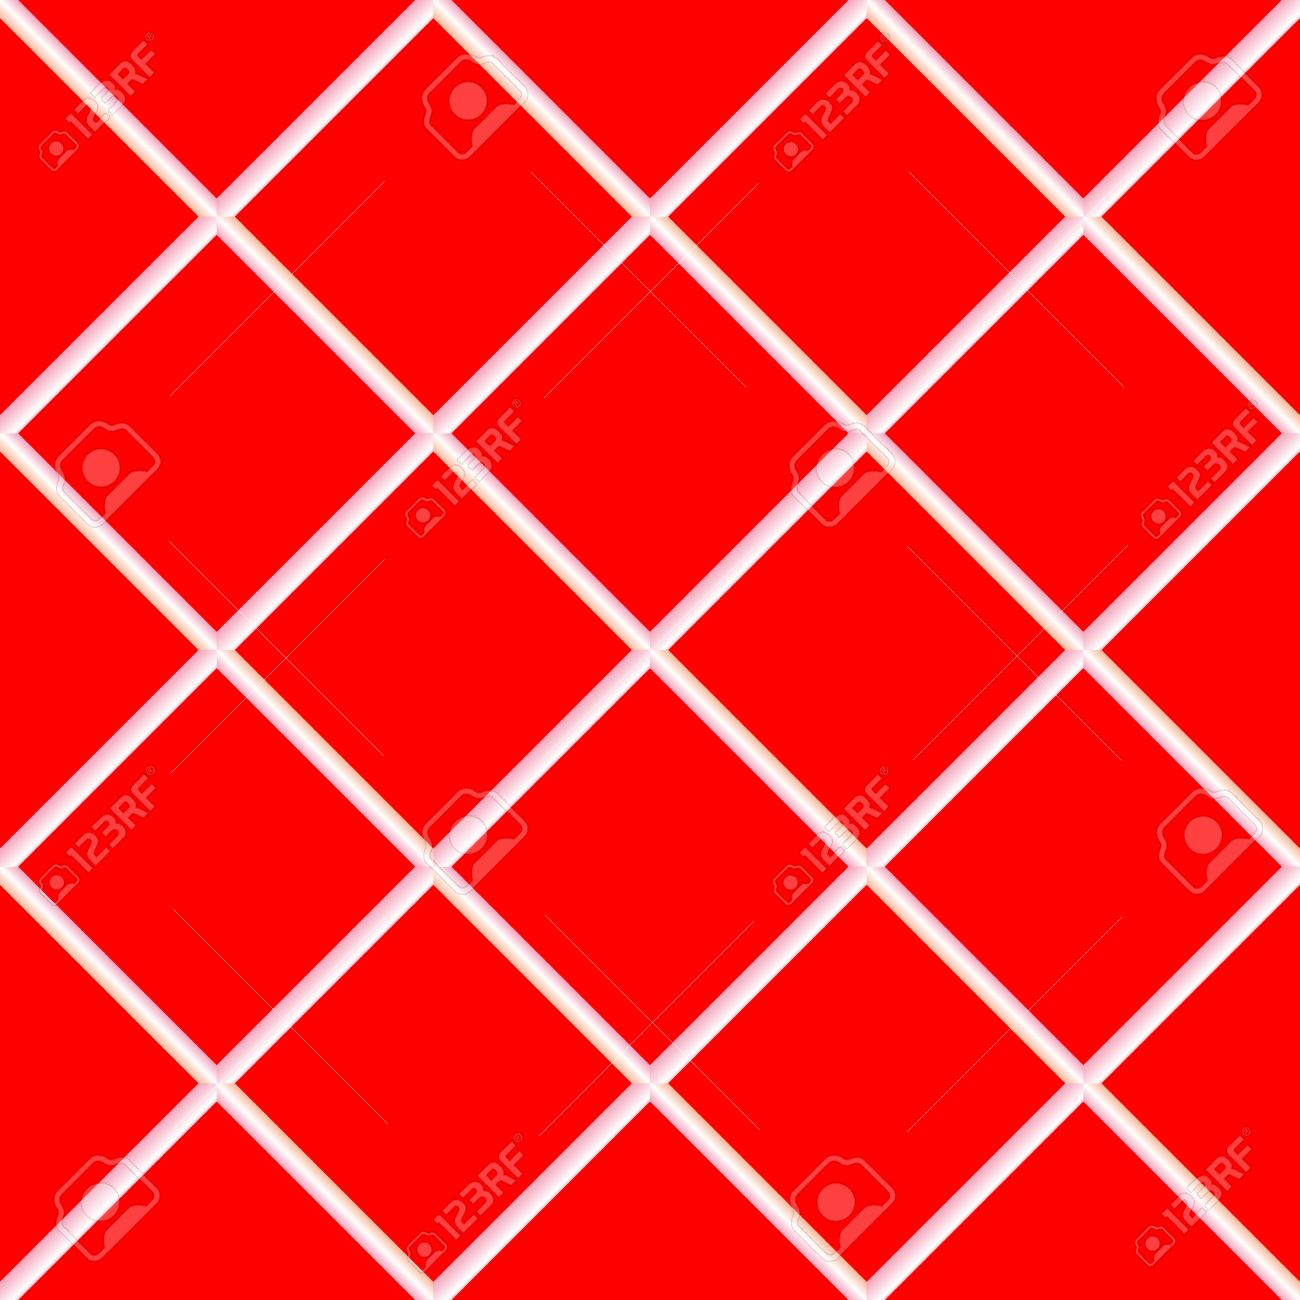 Red Seamless Ceramic Tiles Abstract Texture Royalty Free